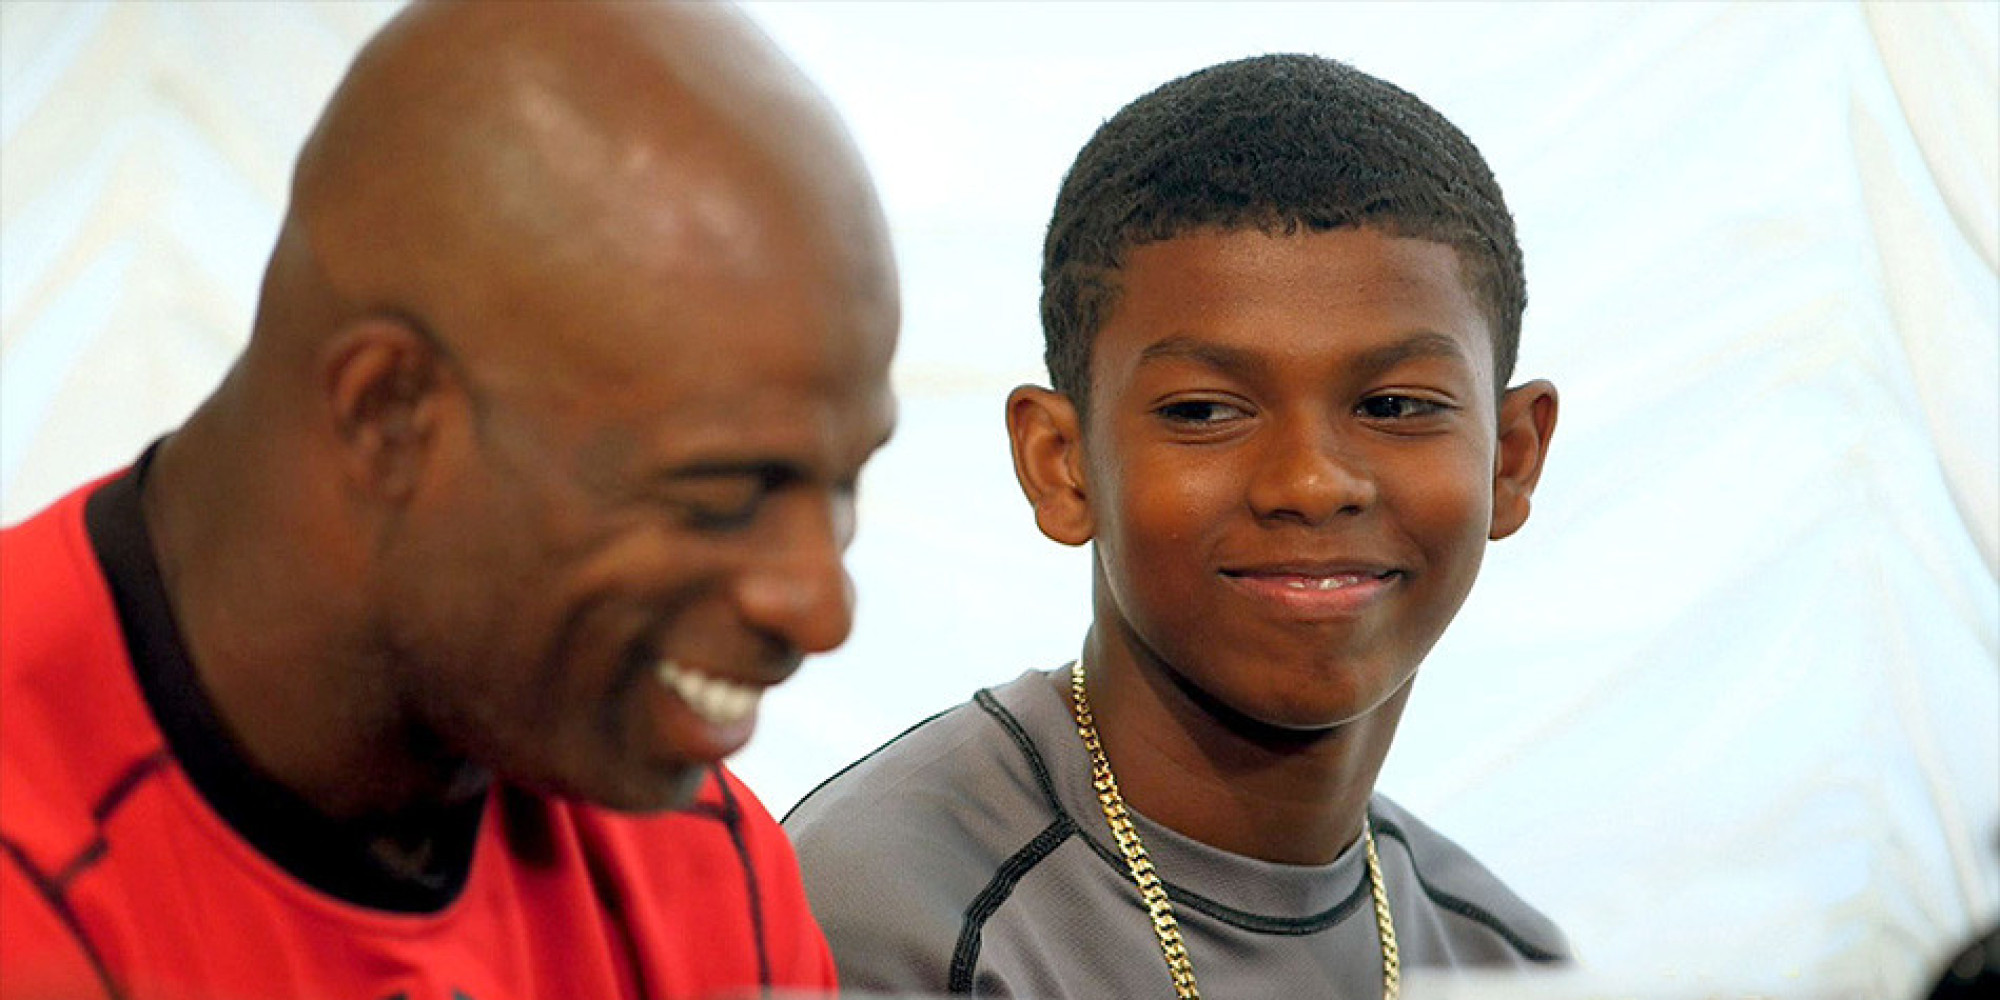 Deion Sanders And His Talented Teenage Son Play The Blues ...